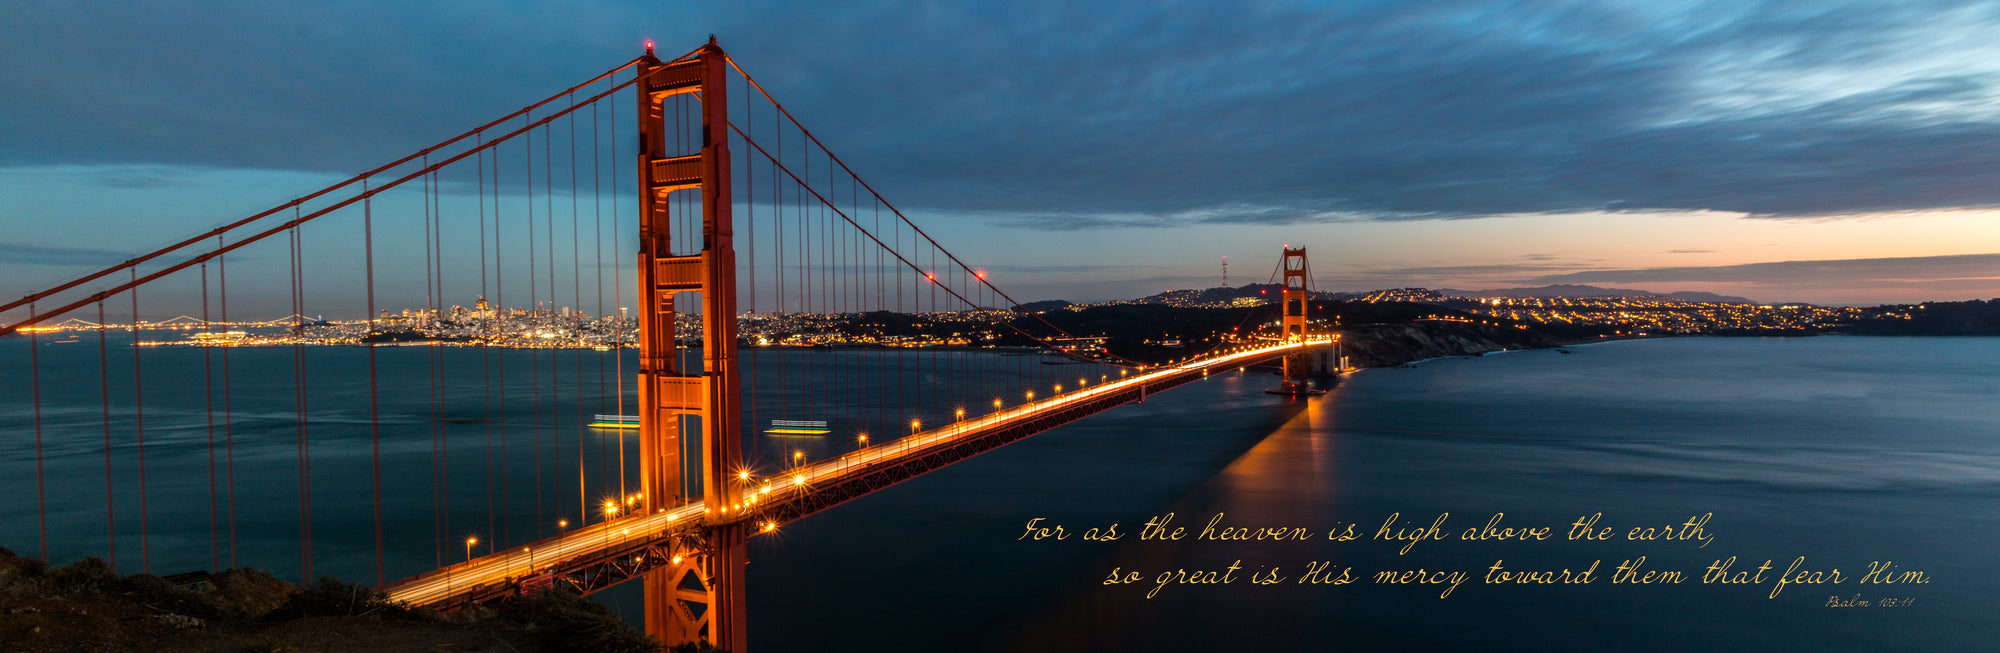 Golden Gate Bridge at sunset in San Francisco, California with scripture verse